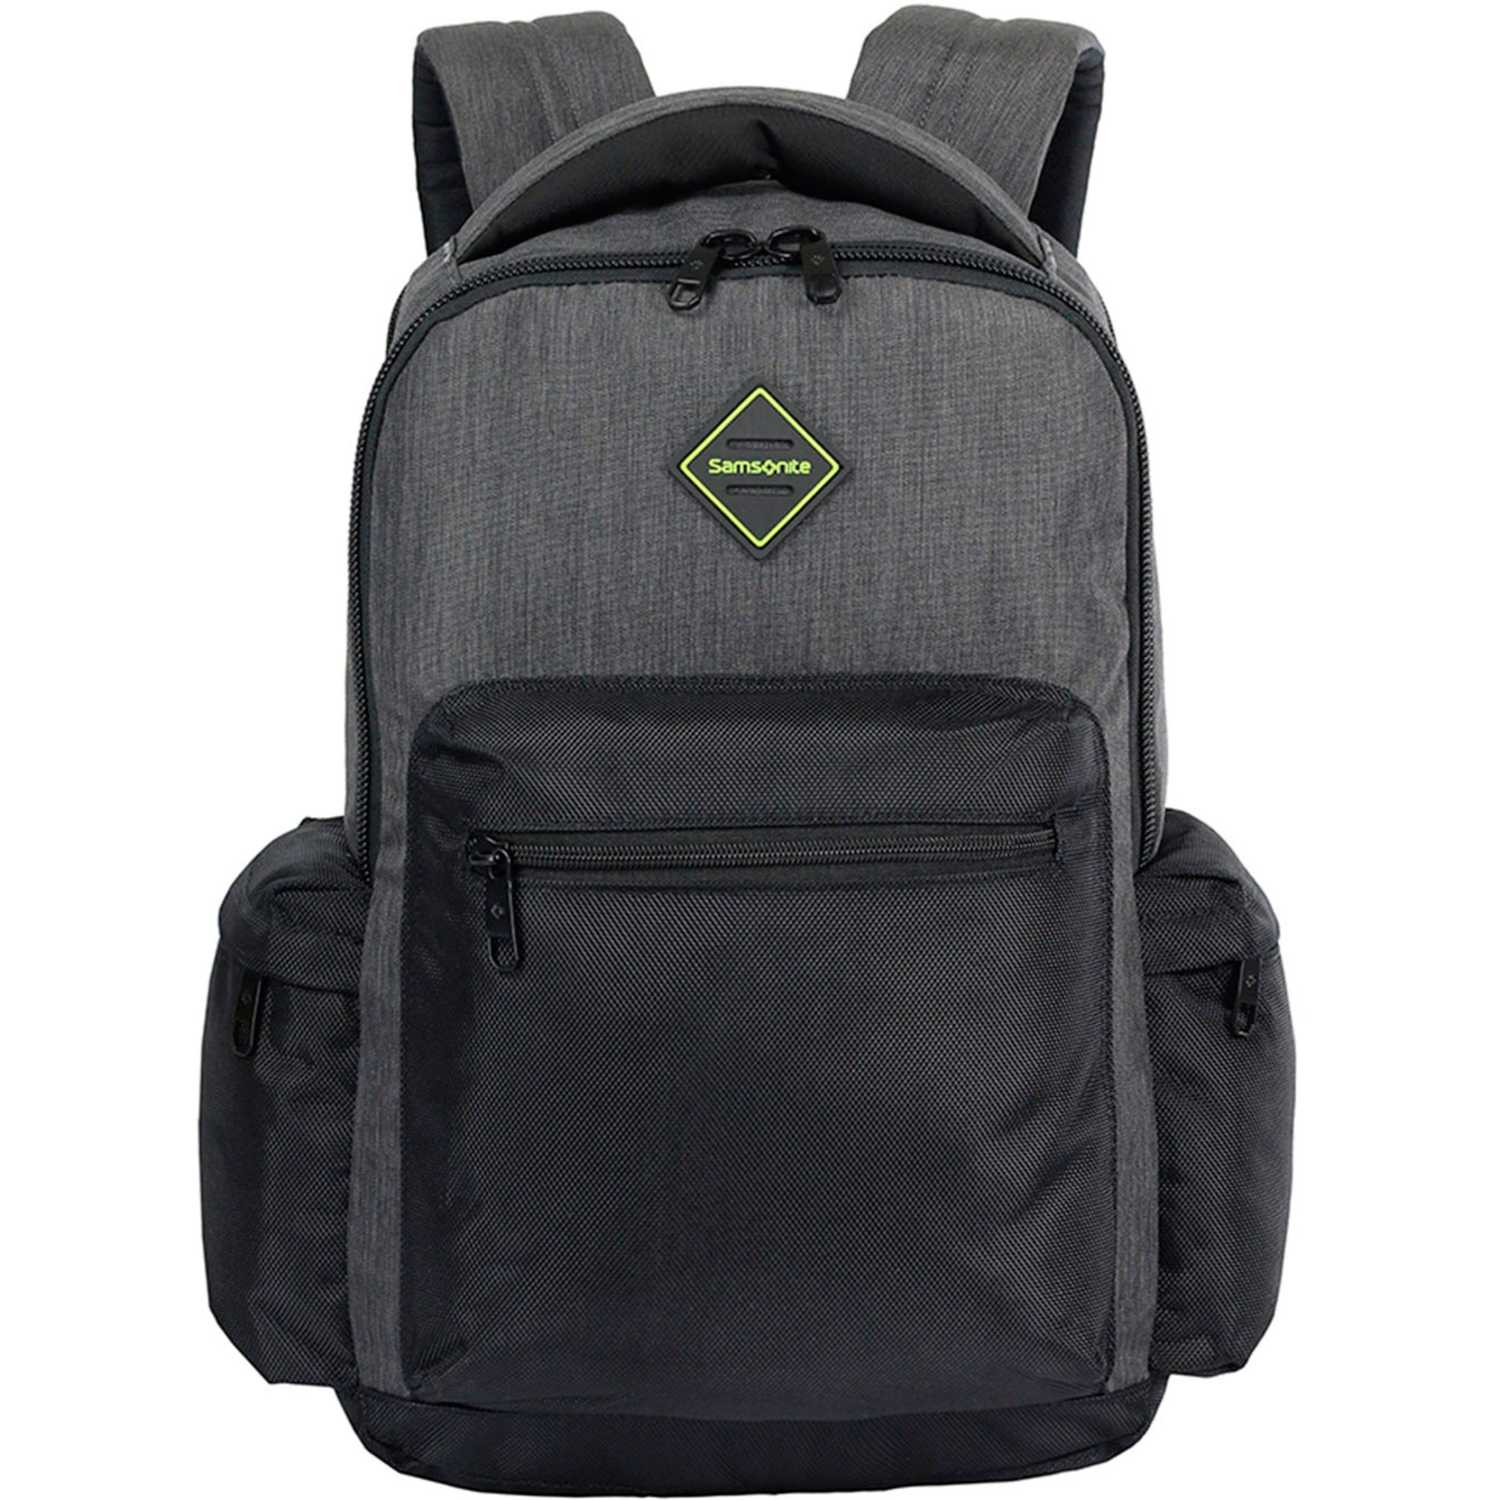 Mochila  Samsonite Gris / negro laptop backpack 16 dark grey ultimate server